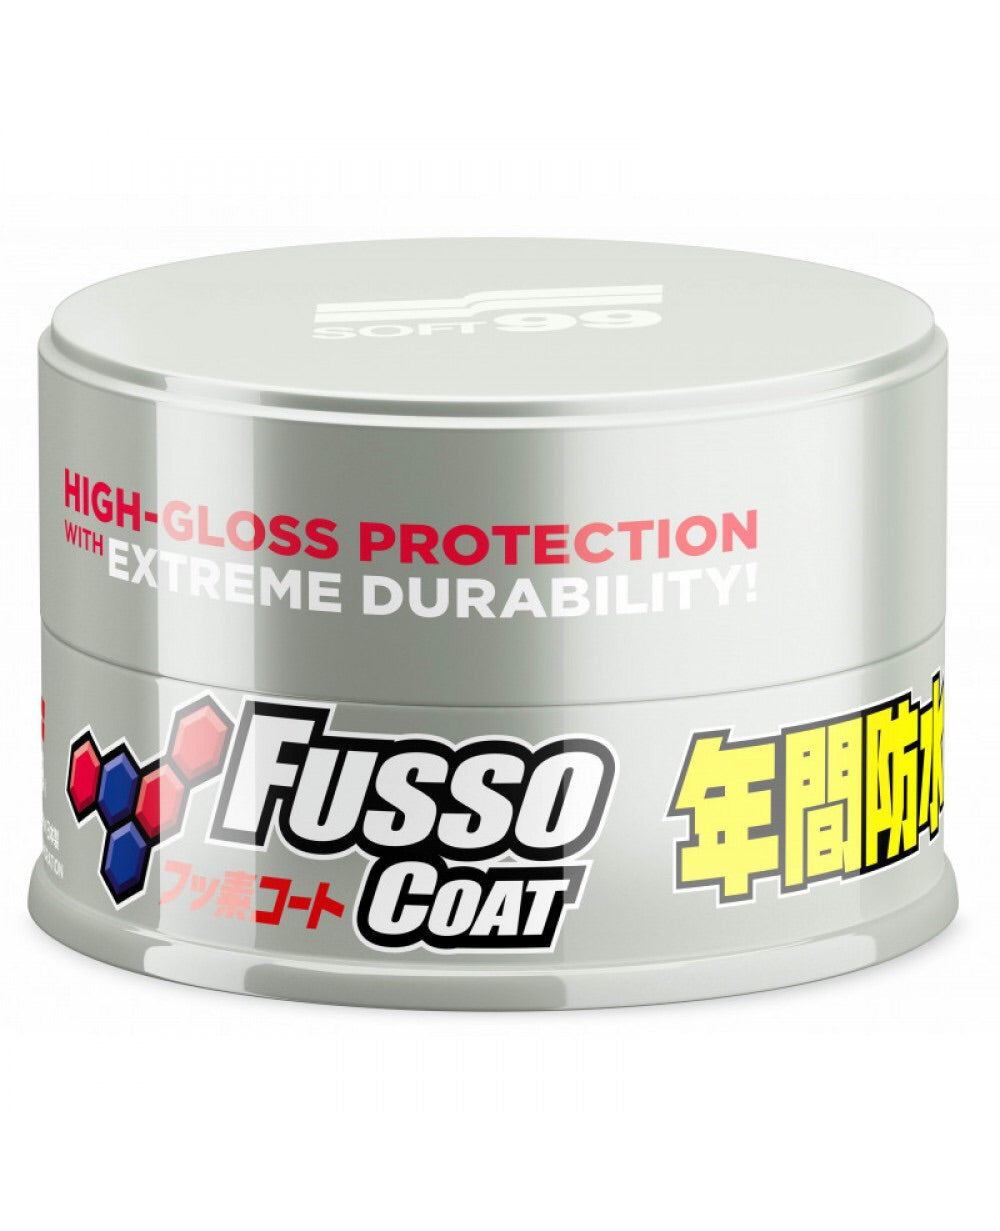 Soft 99 *New* Fusso Coat Limited Edition Light 200g